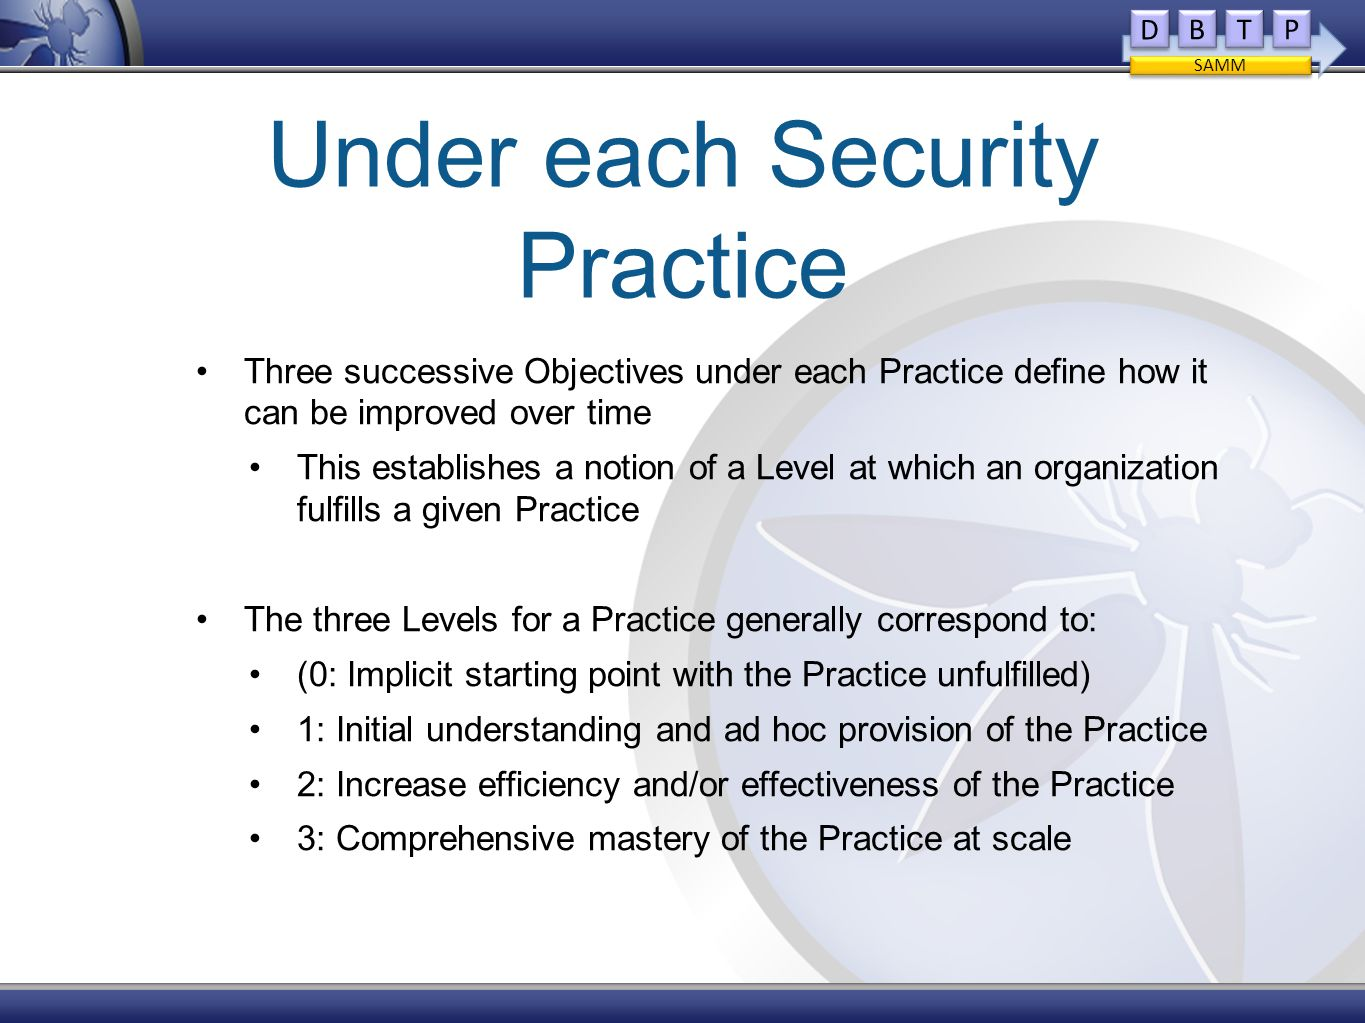 Under each Security Practice Three successive Objectives under each Practice define how it can be improved over time This establishes a notion of a Level at which an organization fulfills a given Practice The three Levels for a Practice generally correspond to: (0: Implicit starting point with the Practice unfulfilled) 1: Initial understanding and ad hoc provision of the Practice 2: Increase efficiency and/or effectiveness of the Practice 3: Comprehensive mastery of the Practice at scale D D B B T T P P SAMM